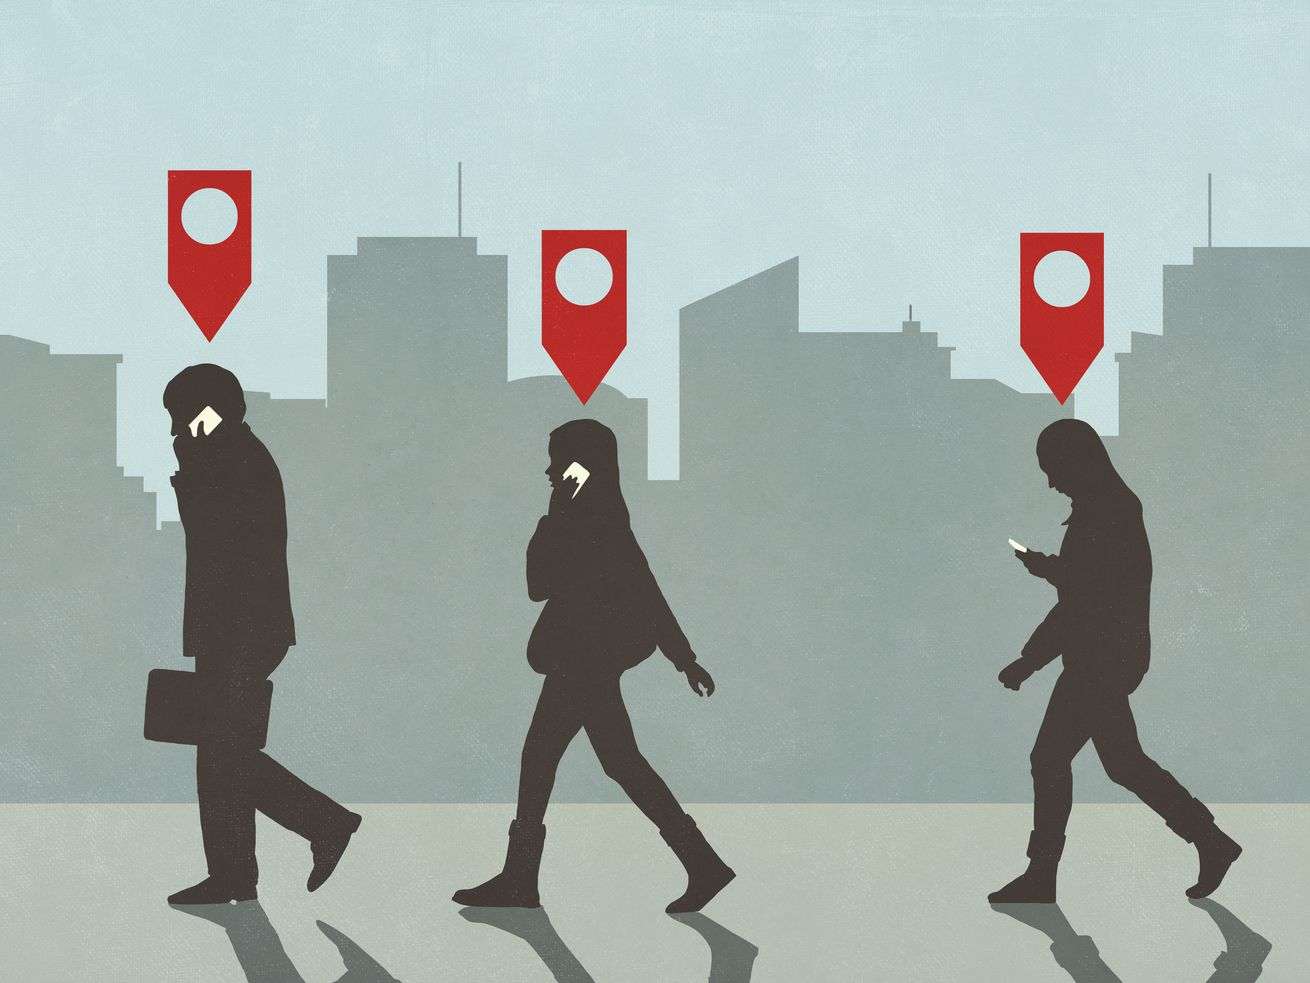 An illustration of three people in silhouette walking along a city street, each with a red arrow tag over their head.